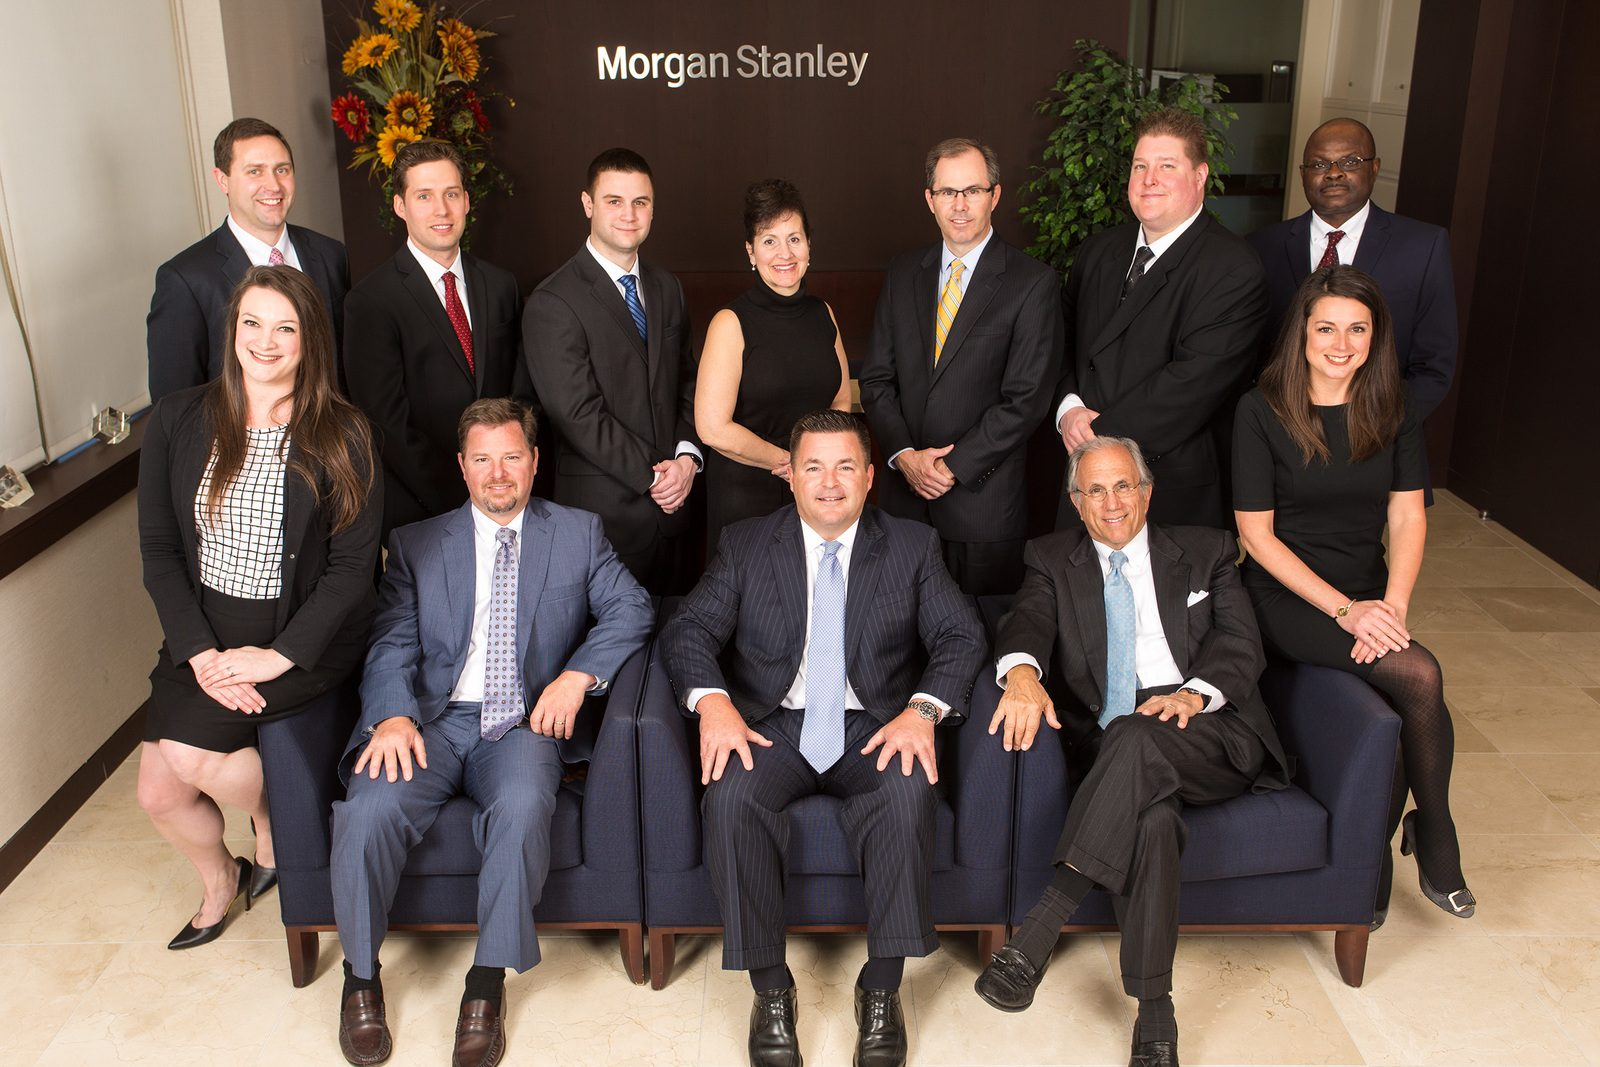 The Bell Broseker Wohl Group | Baltimore, MD | Morgan